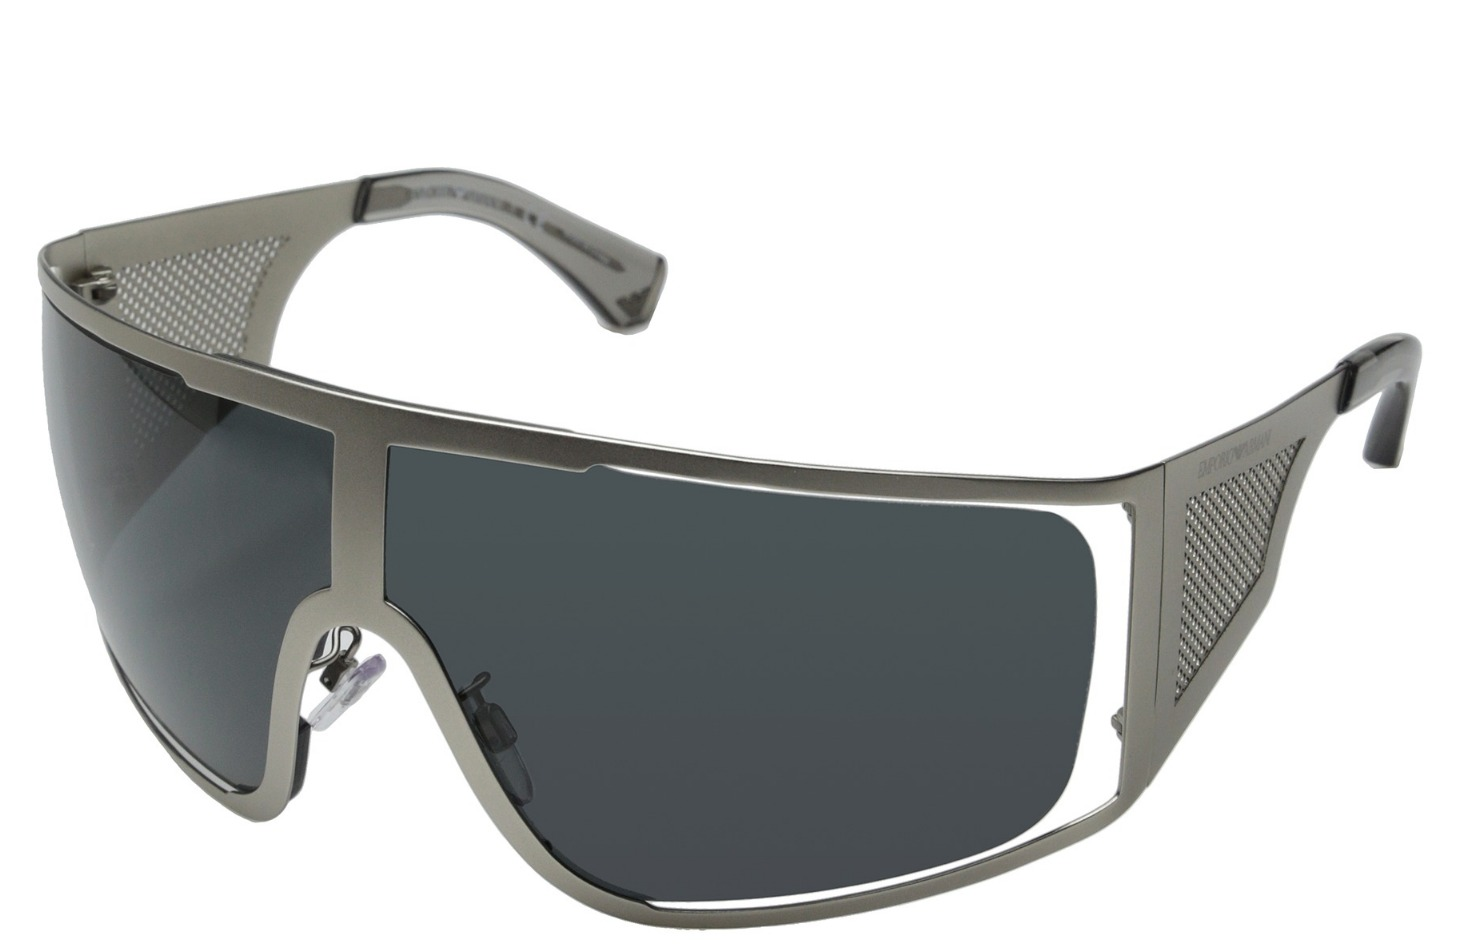 bbd3117ed8c Details about EMPORIO ARMANI Matte Silver Shield Frame w  Grey Lens  Sunglasses BN  380